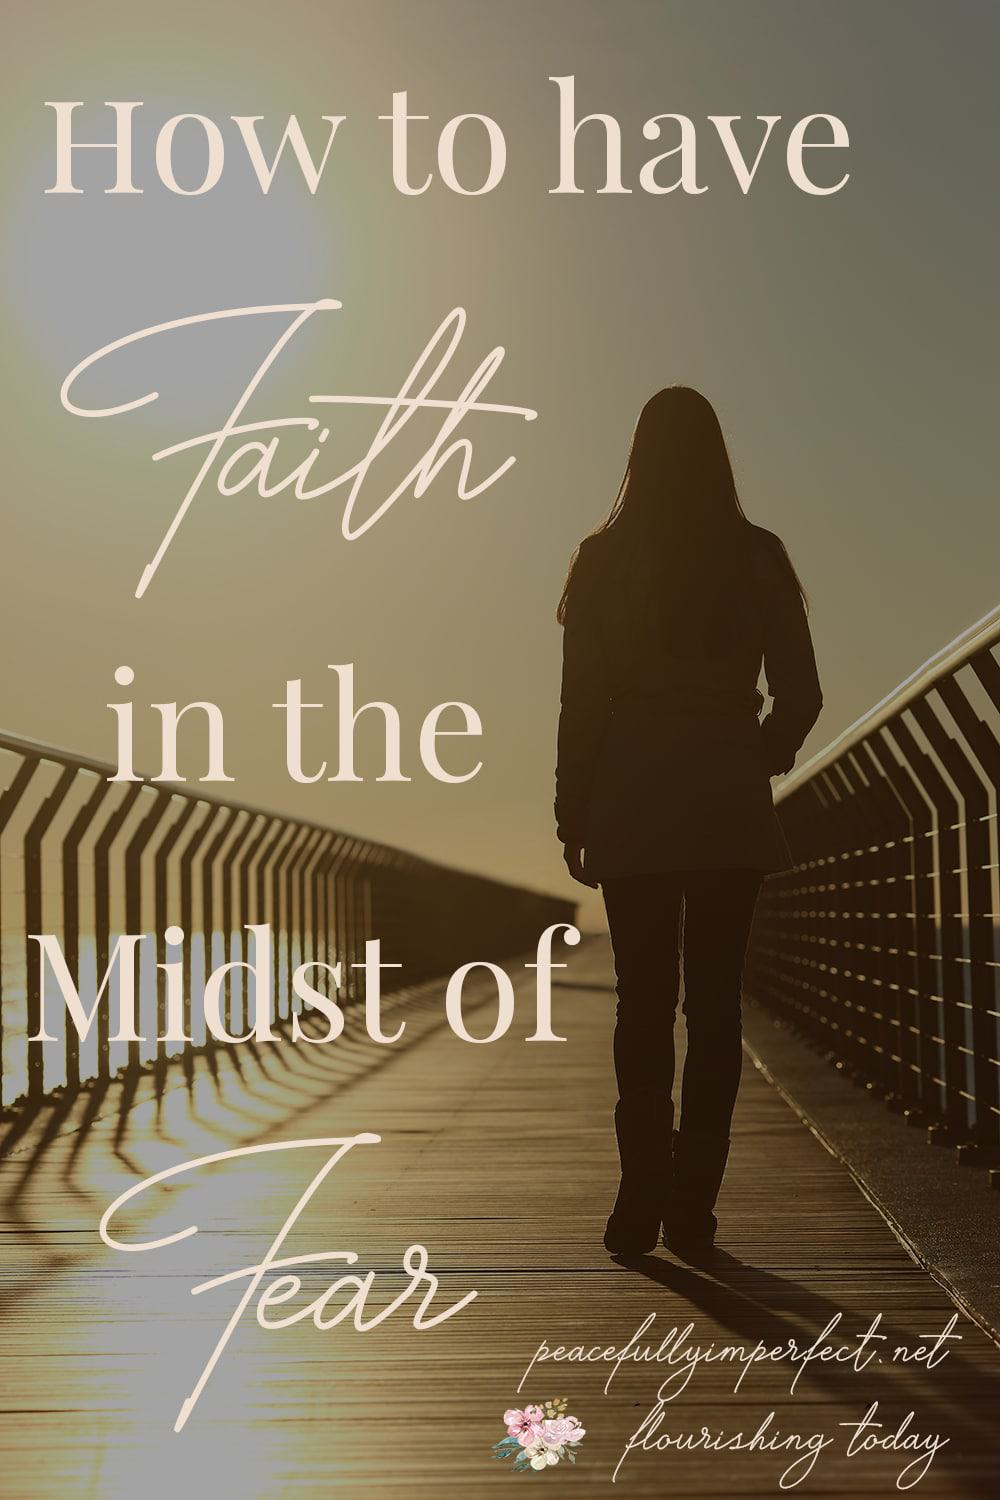 Are you searching for how to have faith in the midst of fear? When we have faith in God and put our hope in His Word, we will find it easier to walk by faith and not by sight! #havefaith #faith #faithinGod #choosefaith #fear #nofear #scripture #scripturesonfear #bibleverses